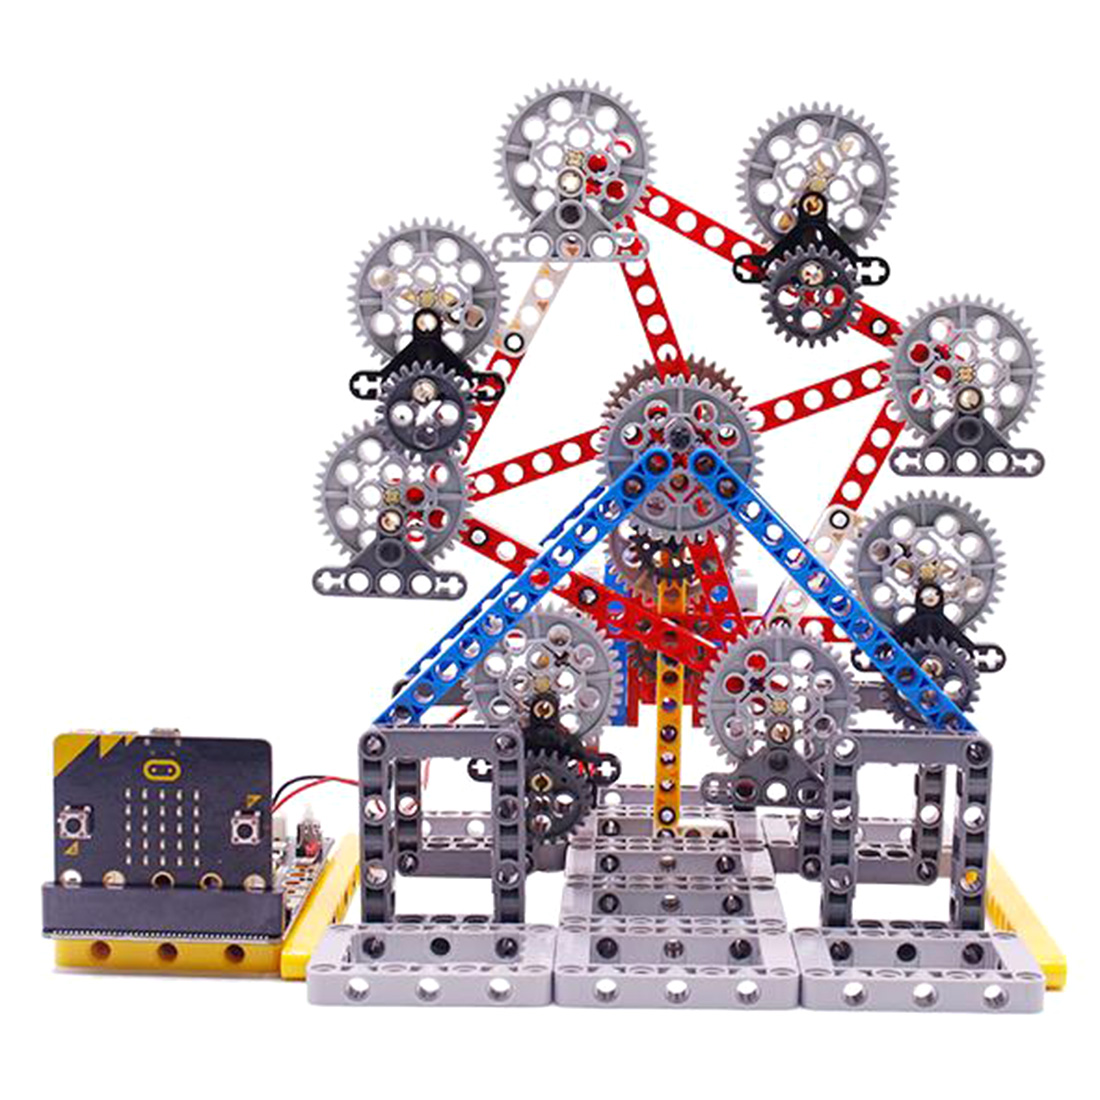 With Micro:Bit Programmable Building Block DIY Smart Ferris Wheel Kit Programable Toys For Men Kids Gift - Random Color